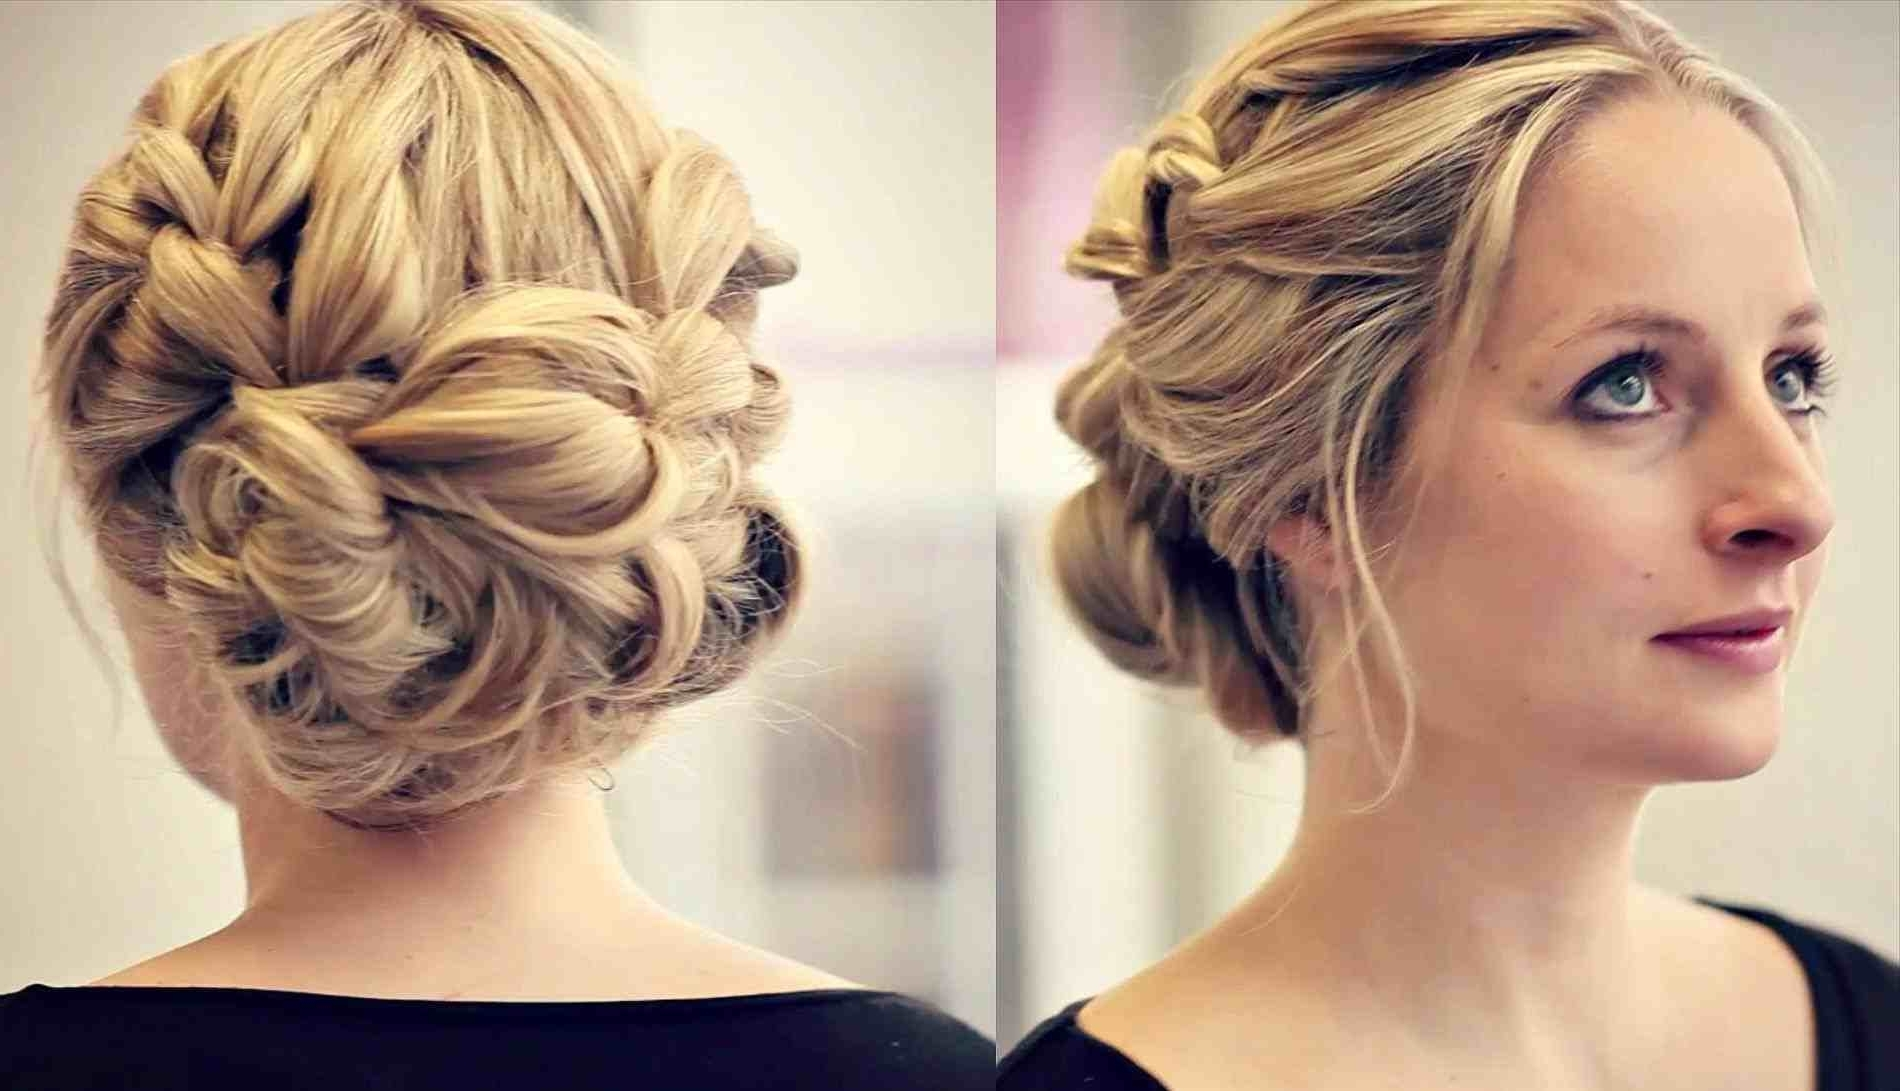 Elegant Hairstyles For Short Hair – Short Medium Long Hairstyle In Bridesmaid Hairstyles Updos For Short Hair (View 7 of 15)